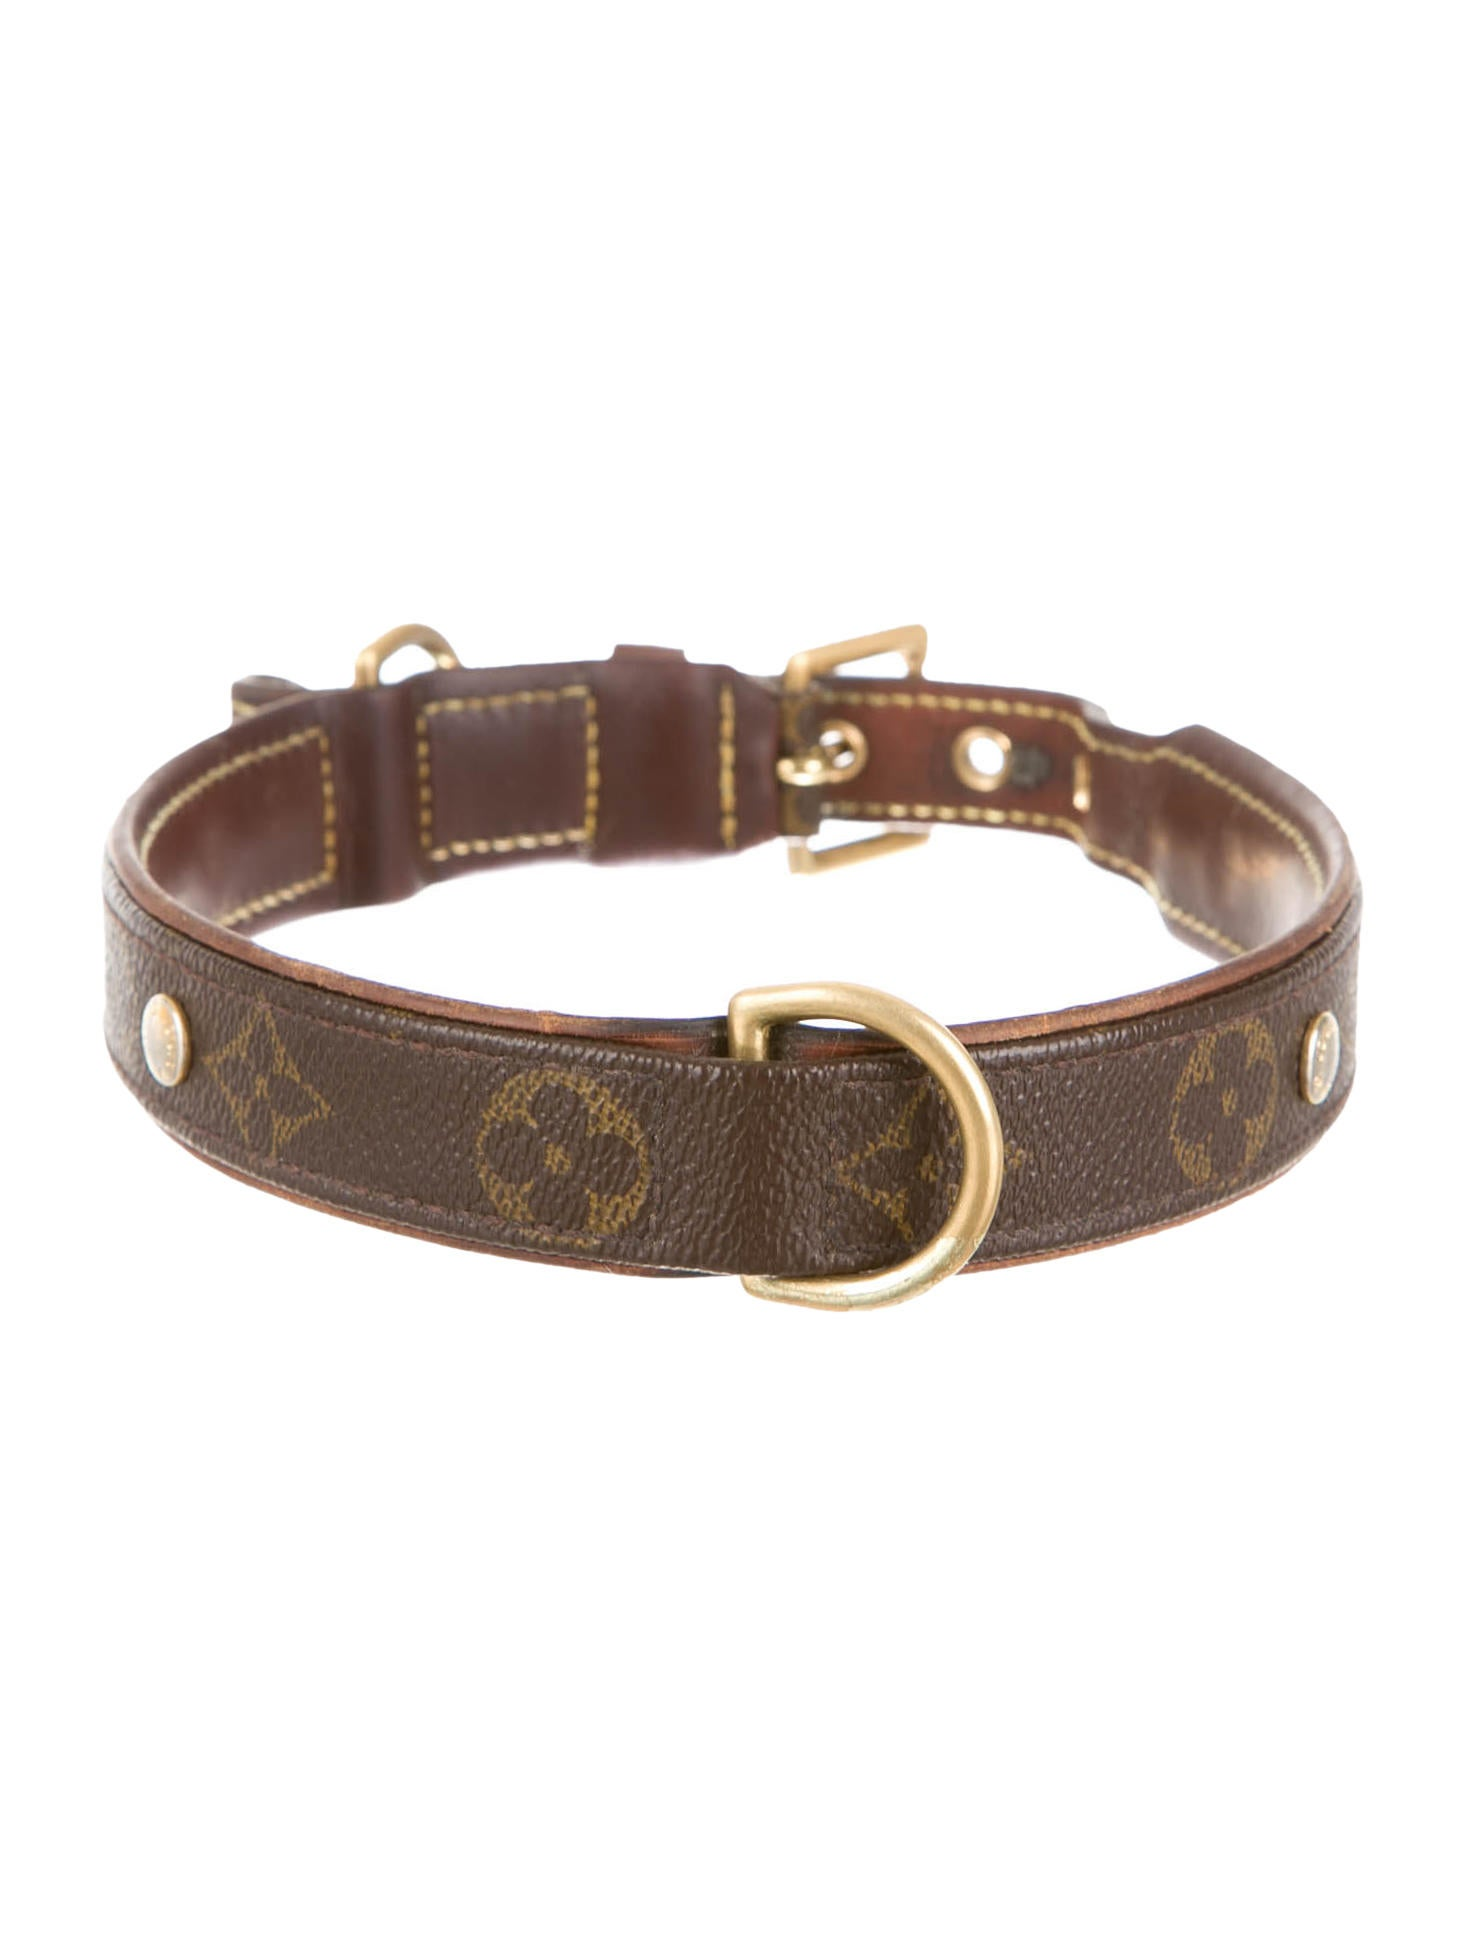 Louis Vuitton Harness For Dogs | Jaguar Clubs Of North America